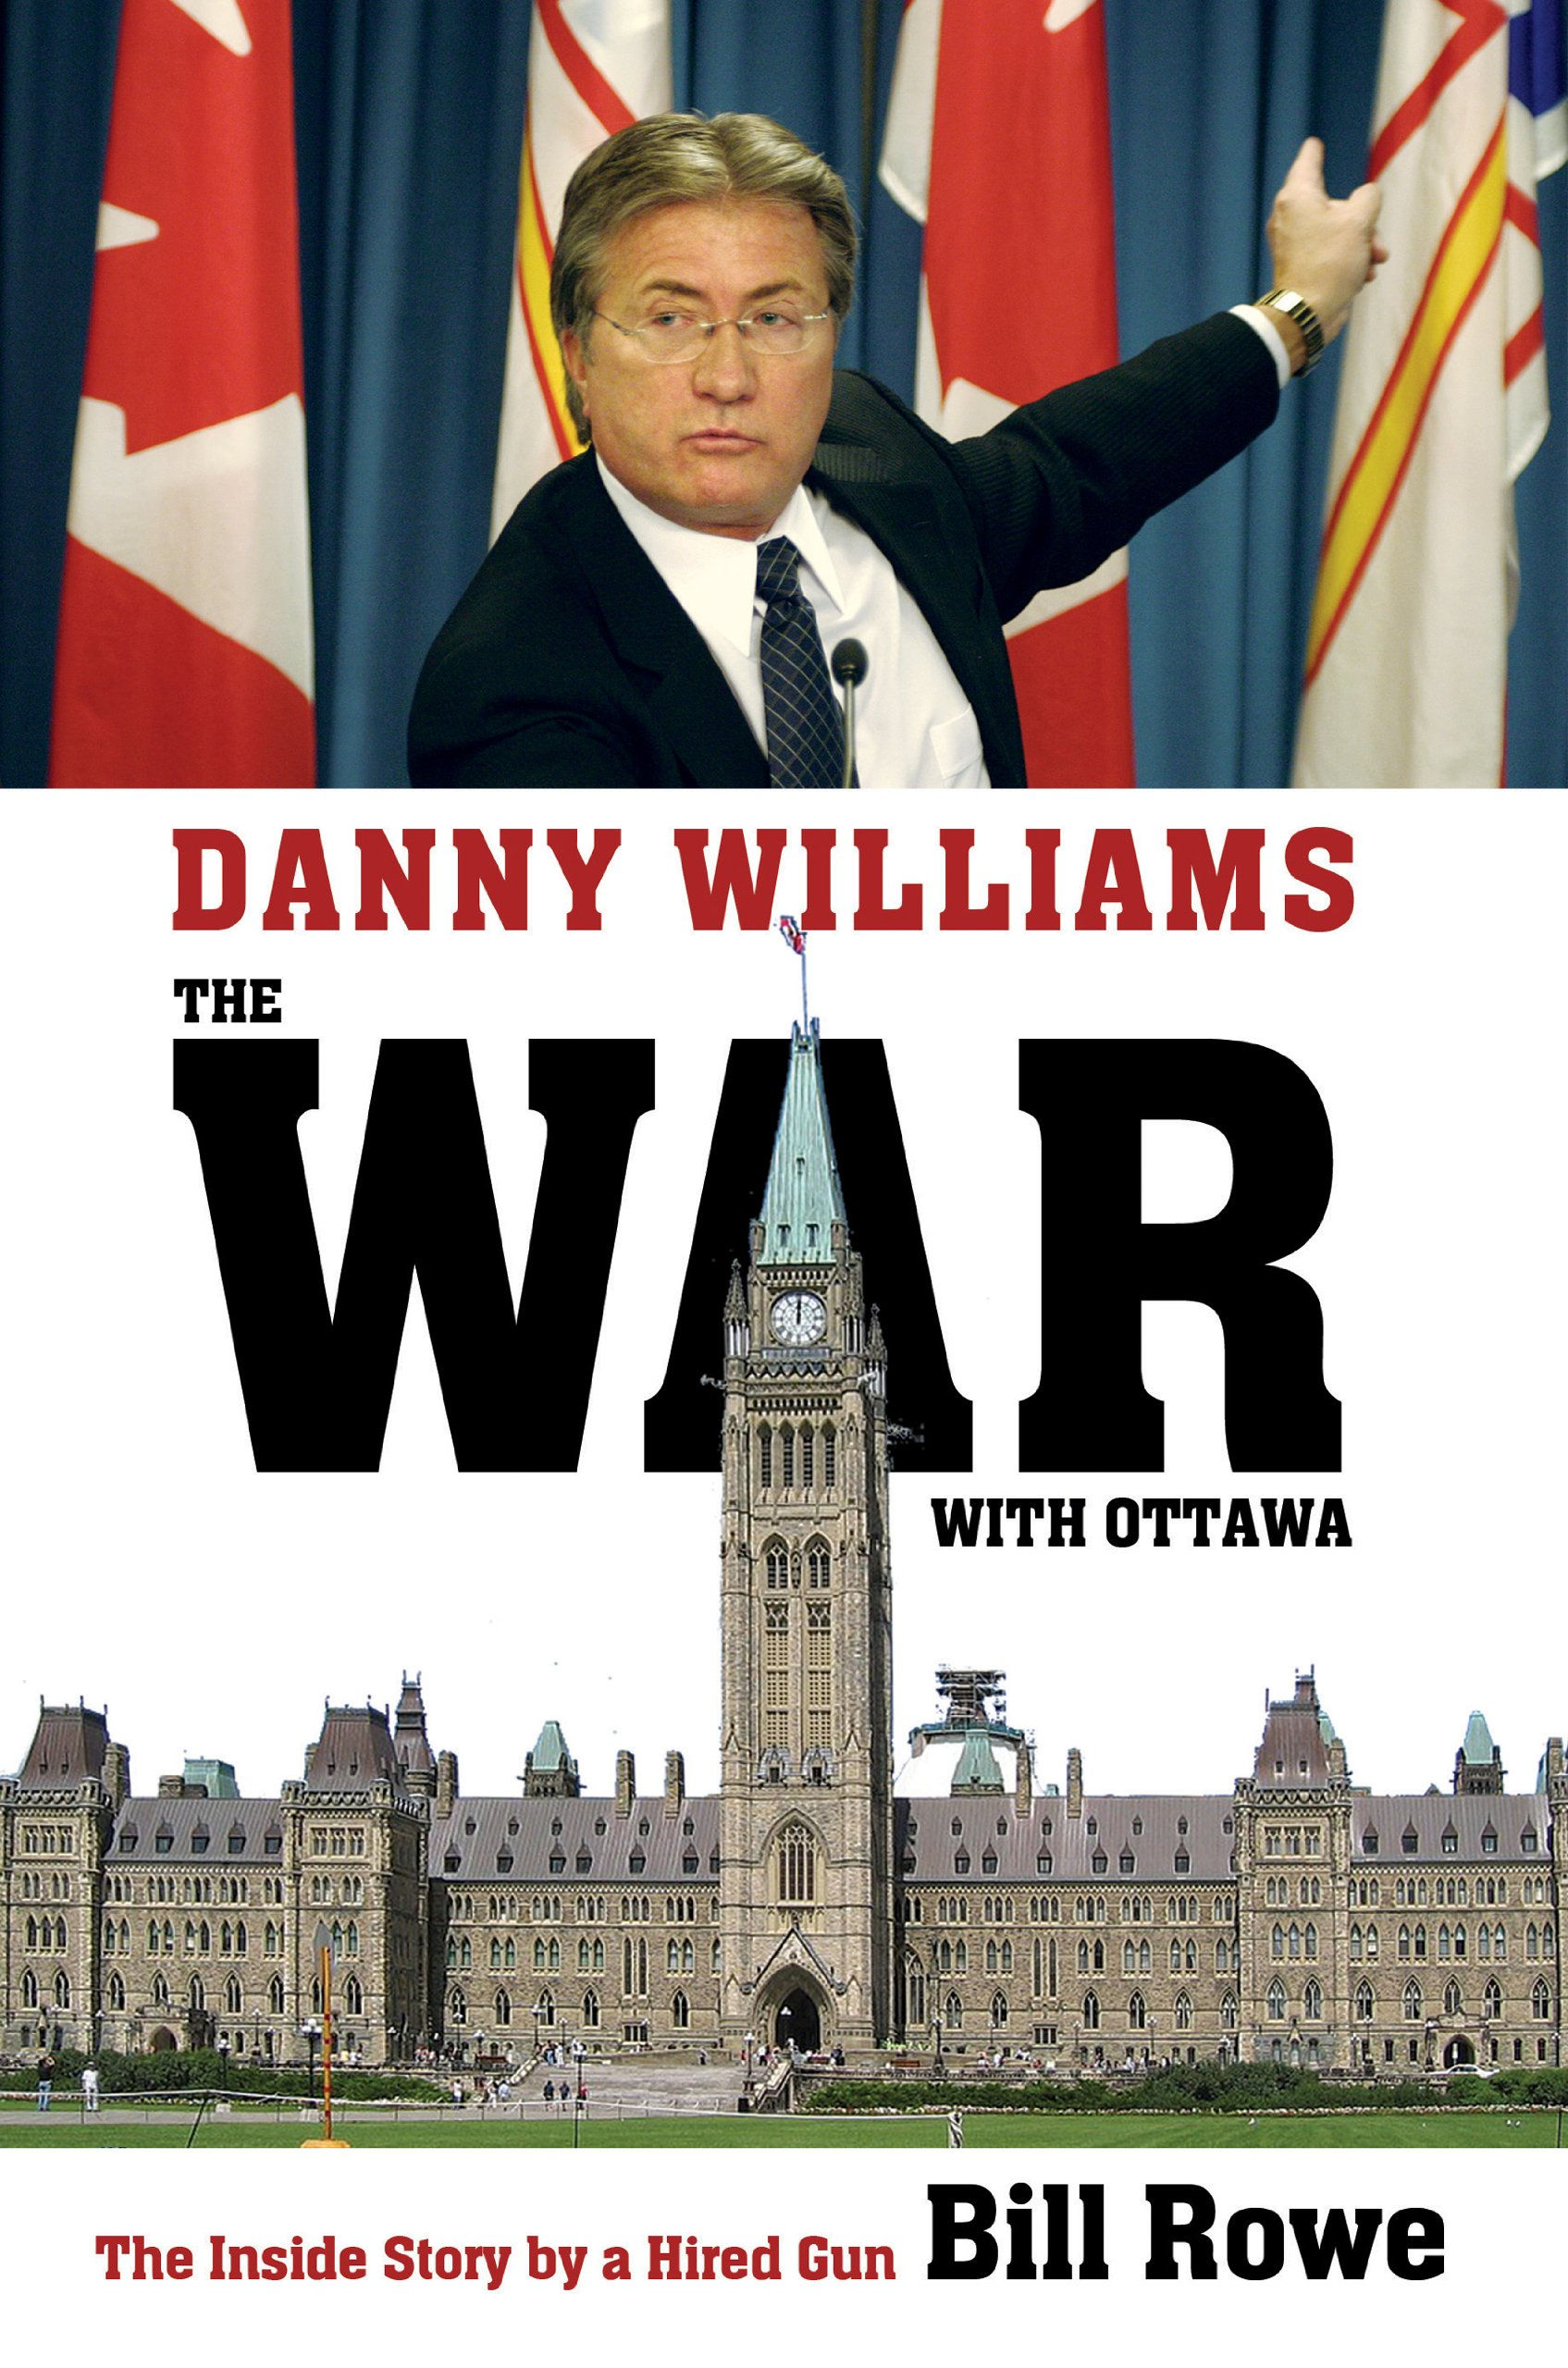 Danny Williams: The War with Ottawa by Bill Rowe